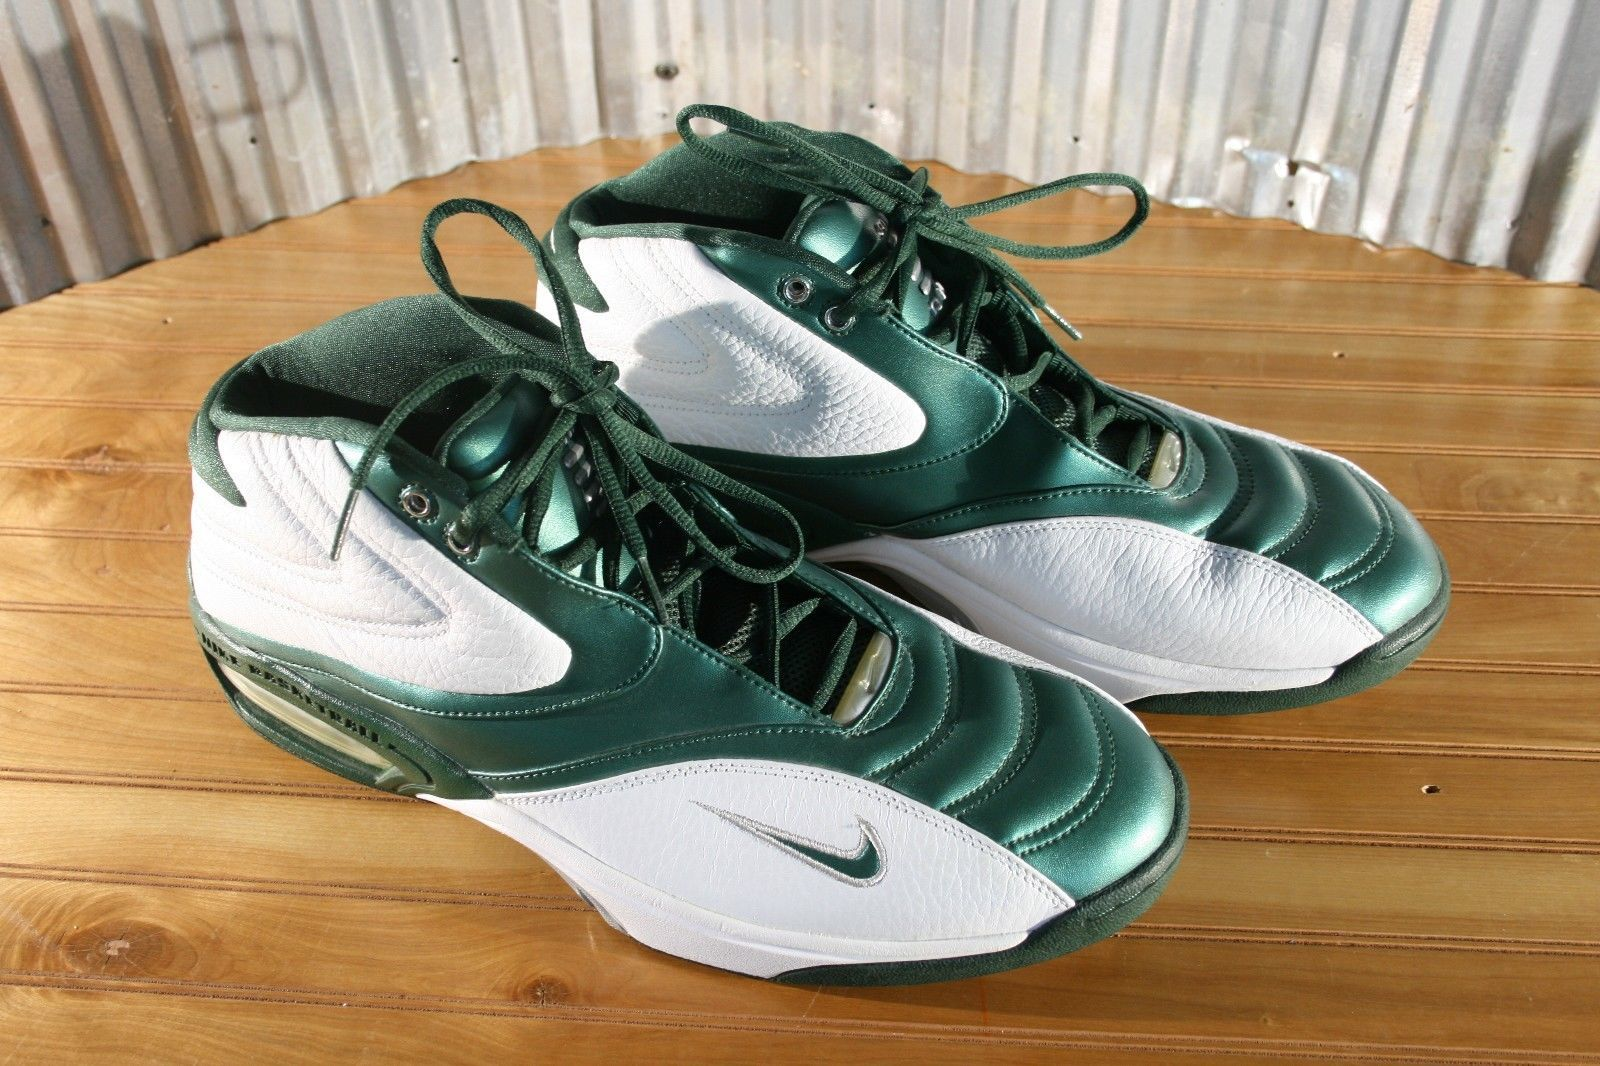 d683e323fbe2 Max Air Nike Basketball Shoes Green White and 12 similar items. 57